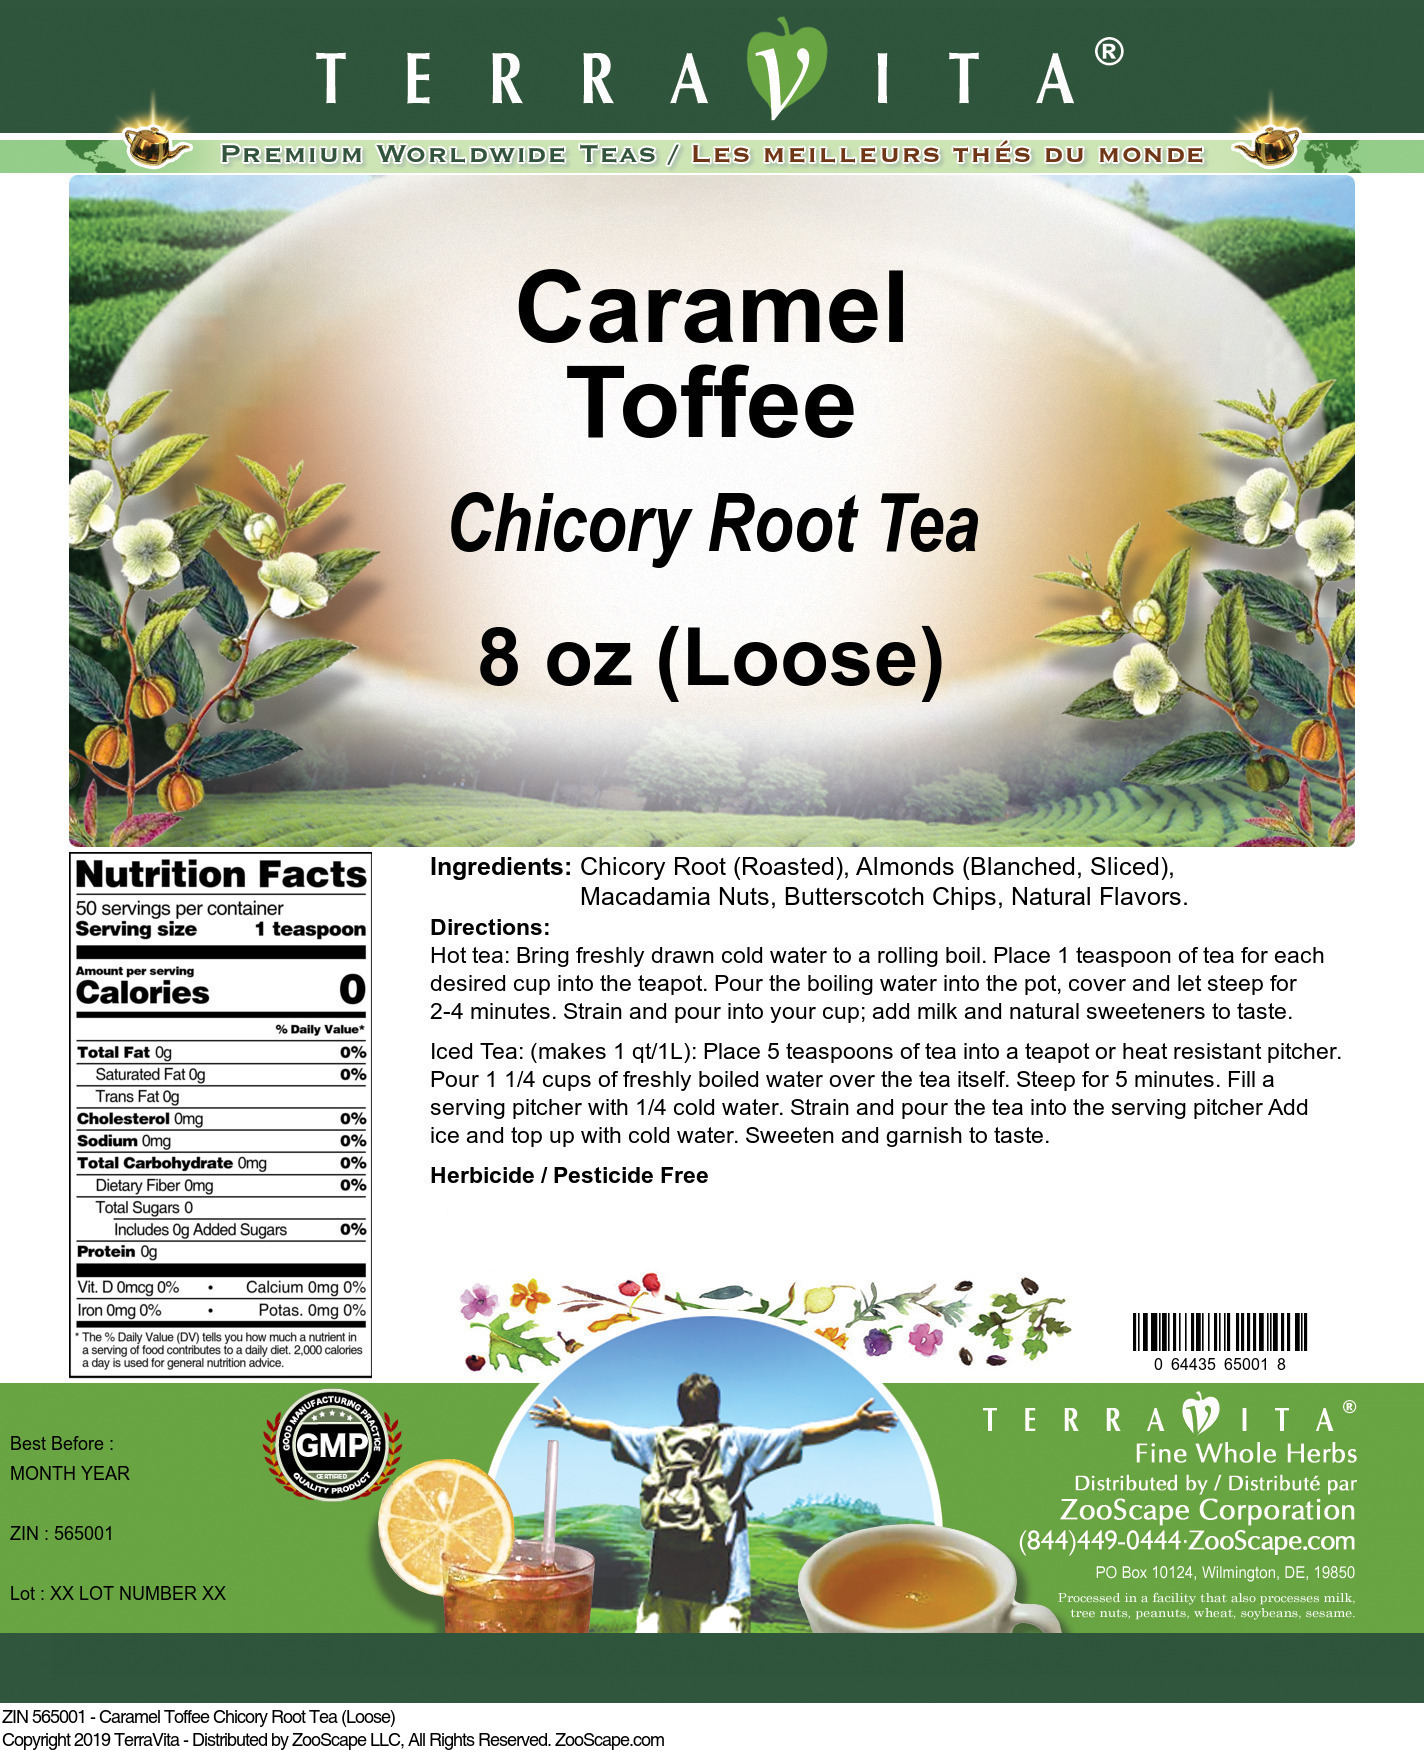 Caramel Toffee Chicory Root